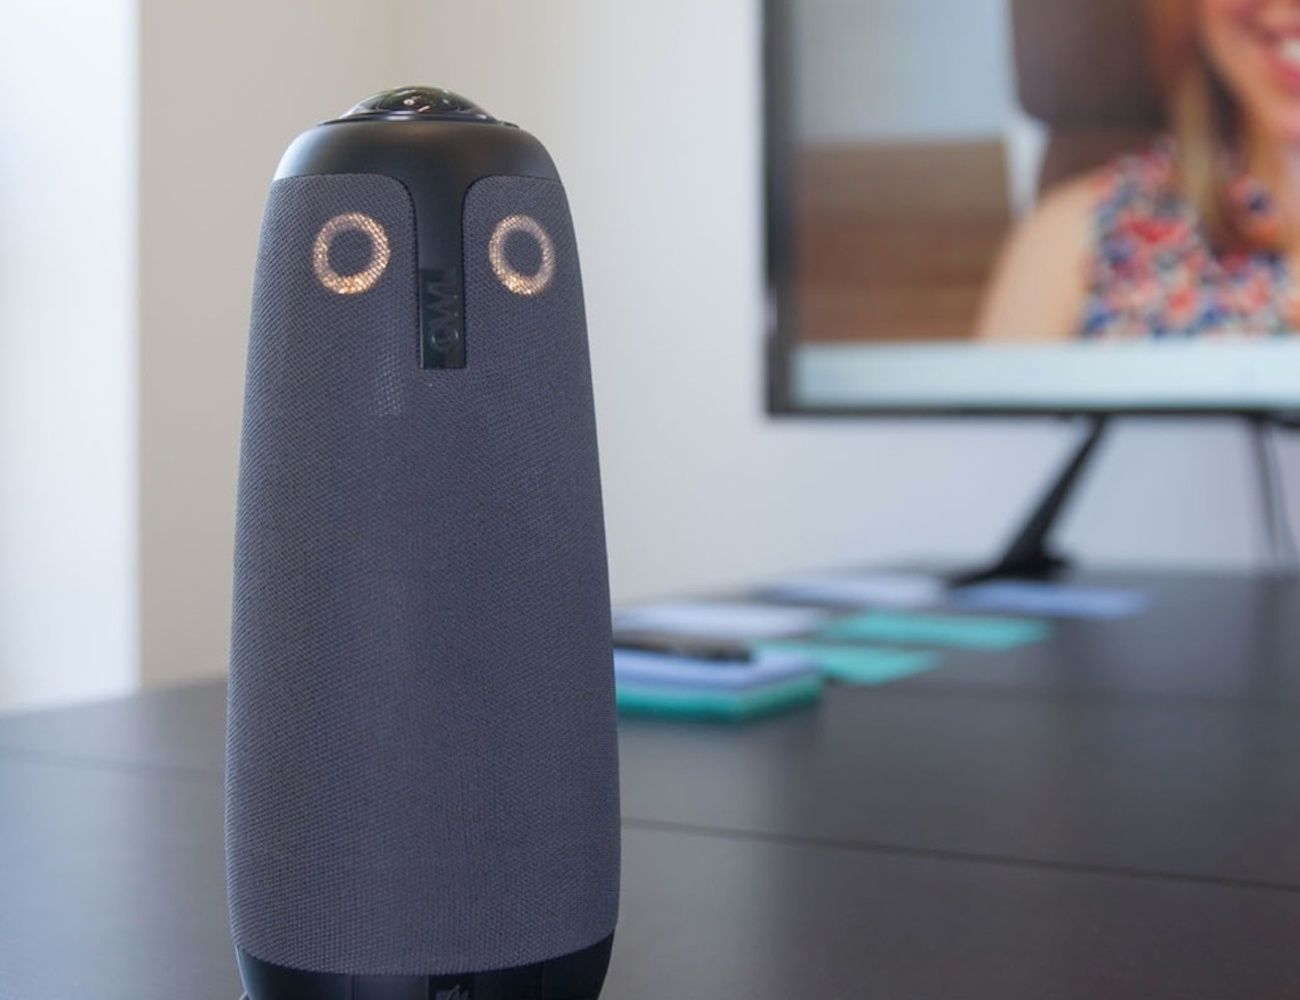 Meeting Owl Robotic Video Conference Camera